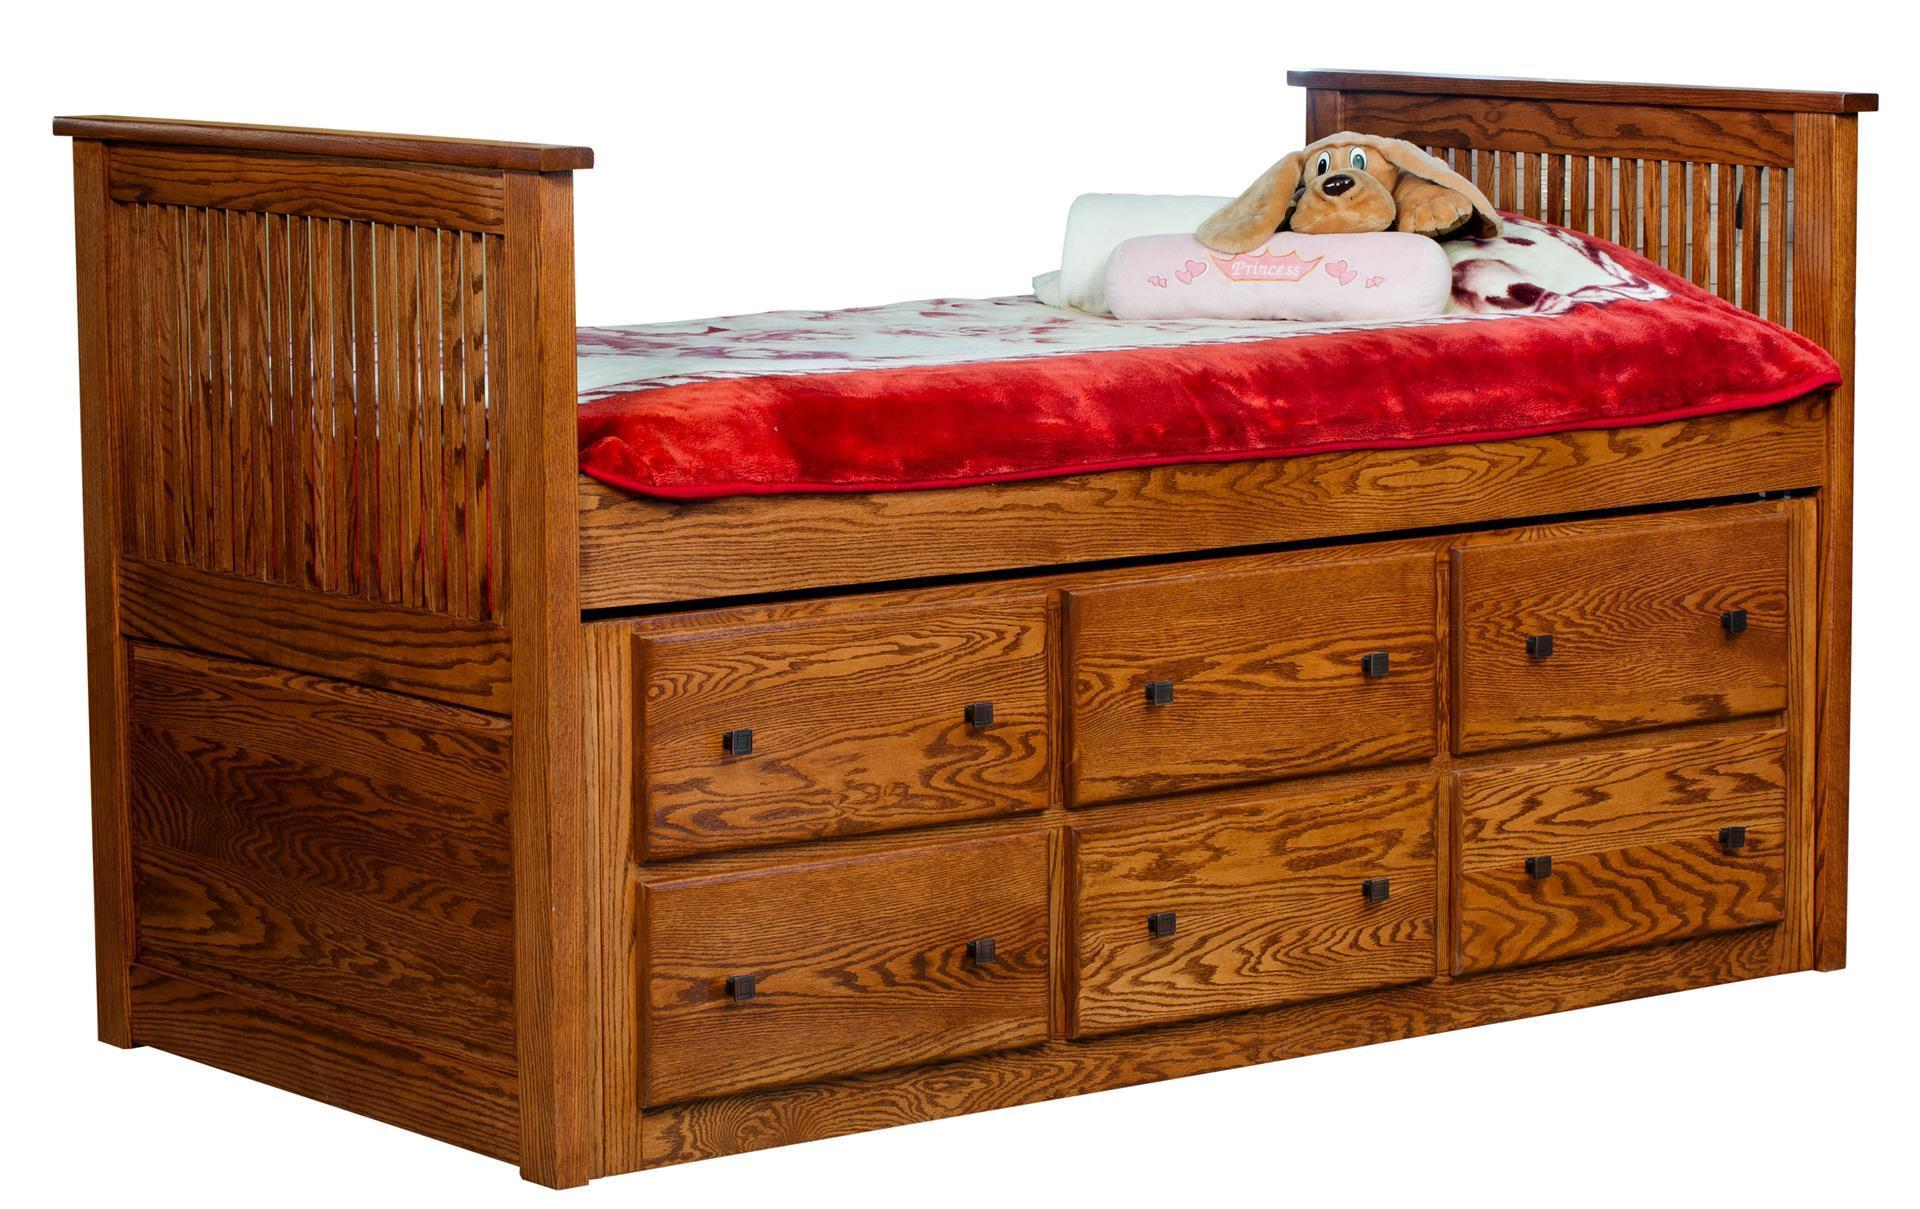 Solid Wood Twin Storage Bed With Trundle Bed From Dutchcrafters Amish